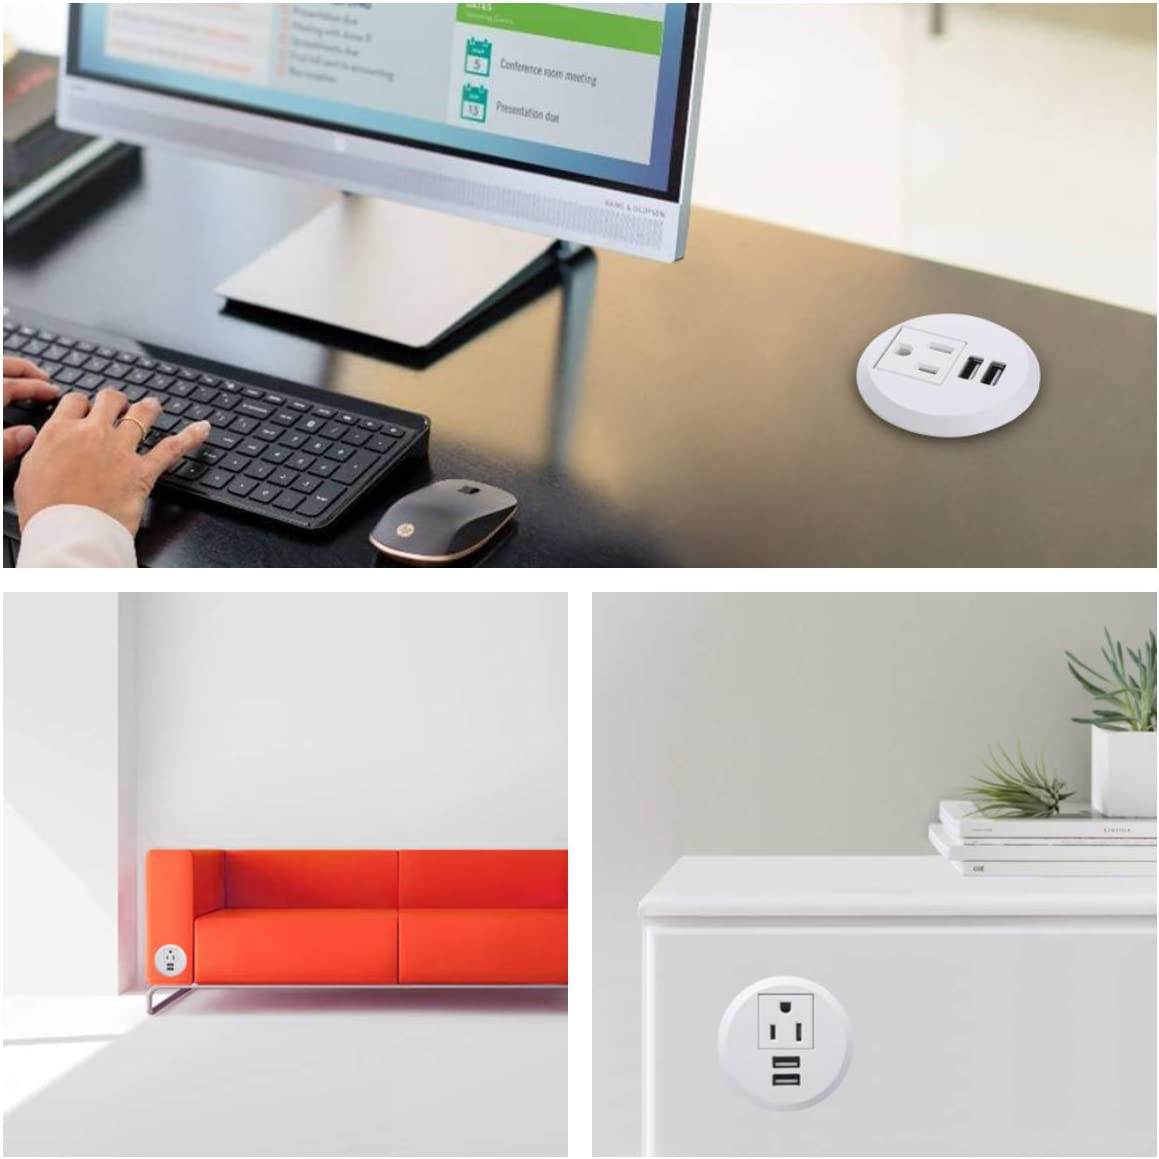 Maggie Desktop Power Grommet,2inch Hole Table Power Grommet Outlet with 2 USB Charging Ports,6.5ft Extension Cord Desk Power Strip with 1 Outlets for Computer,Table,Kitchen,Office,Home